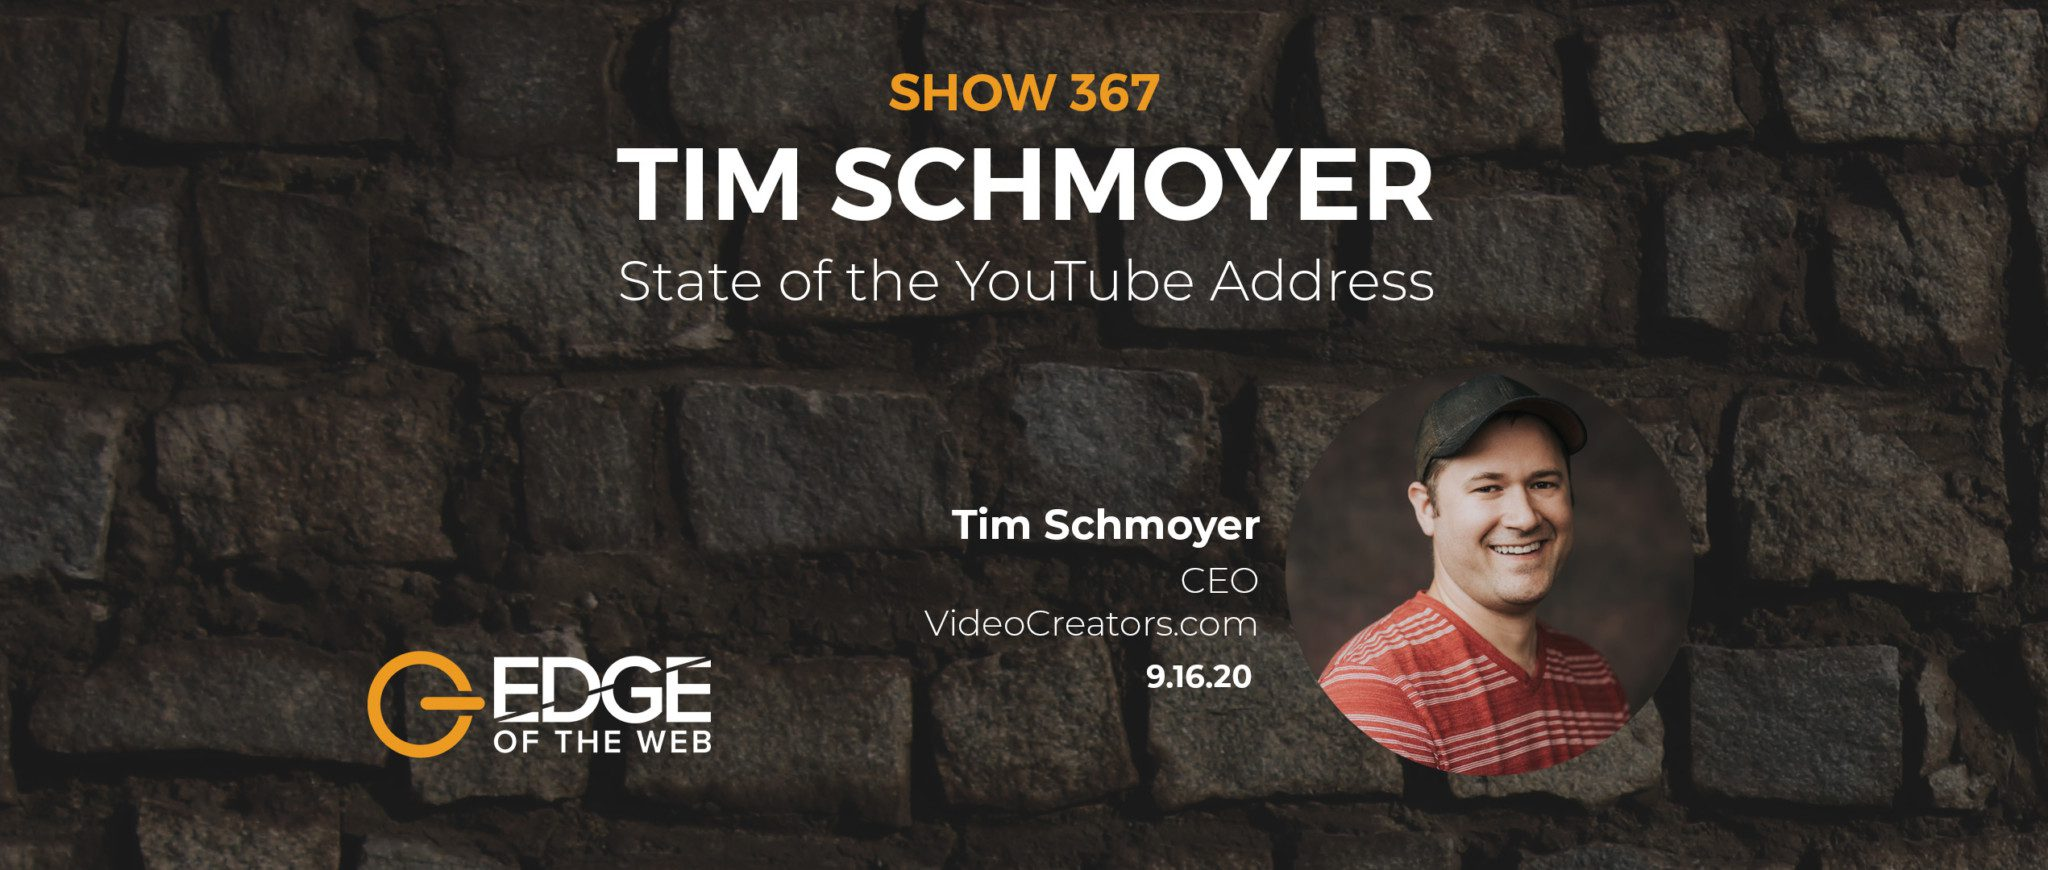 Digital Marketing News Roundup with Tim Schmoyer